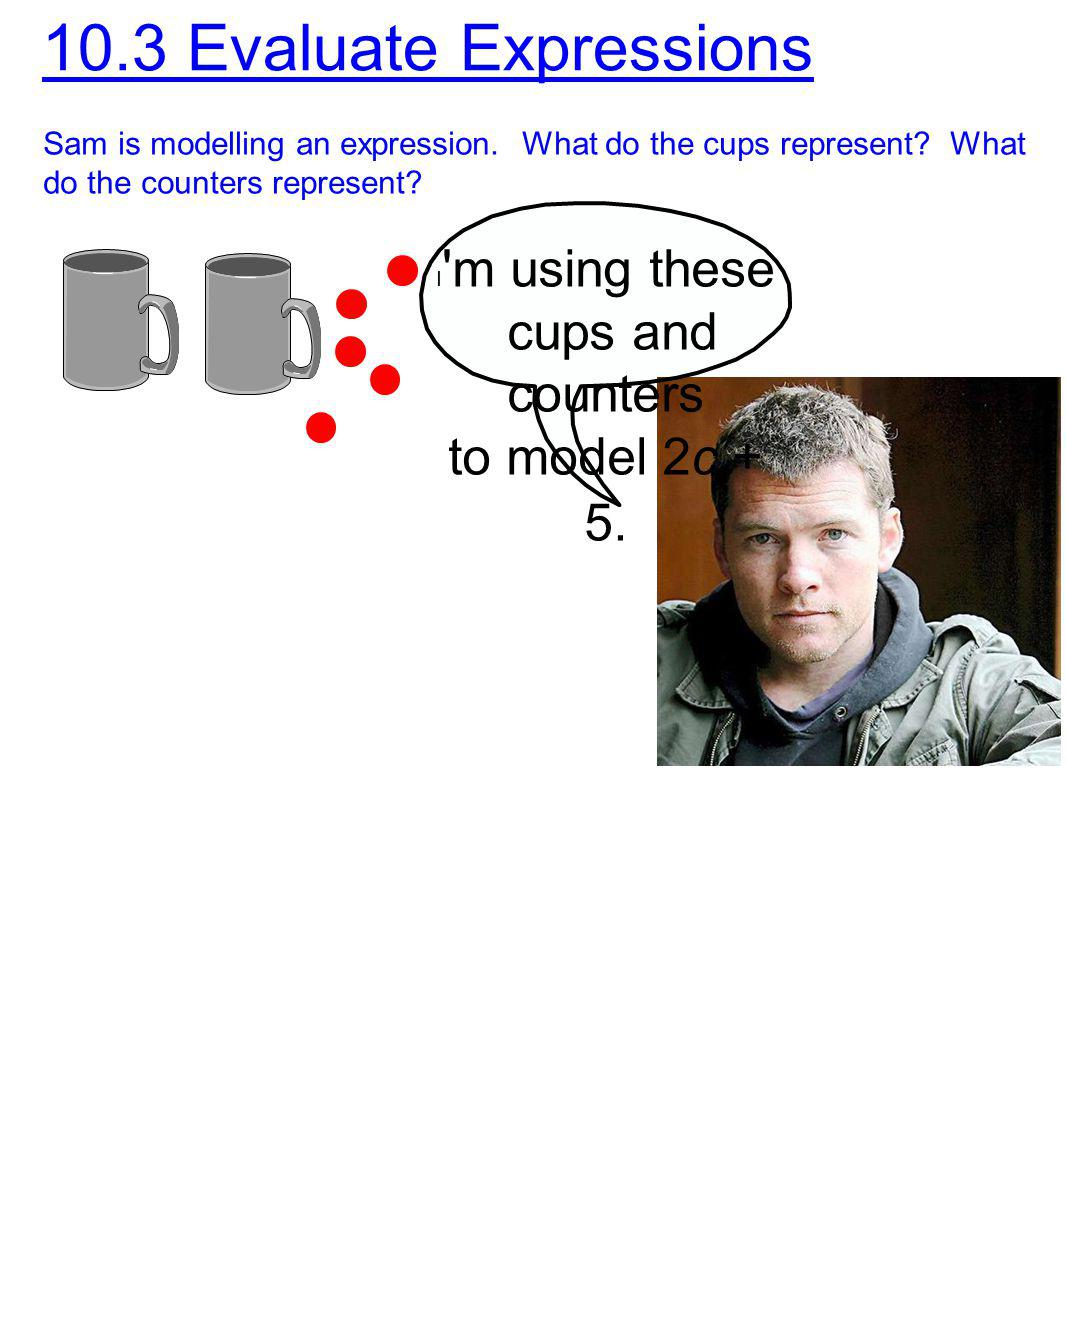 10.3 Evaluate Expressions cups and counters to model 2c + 5.